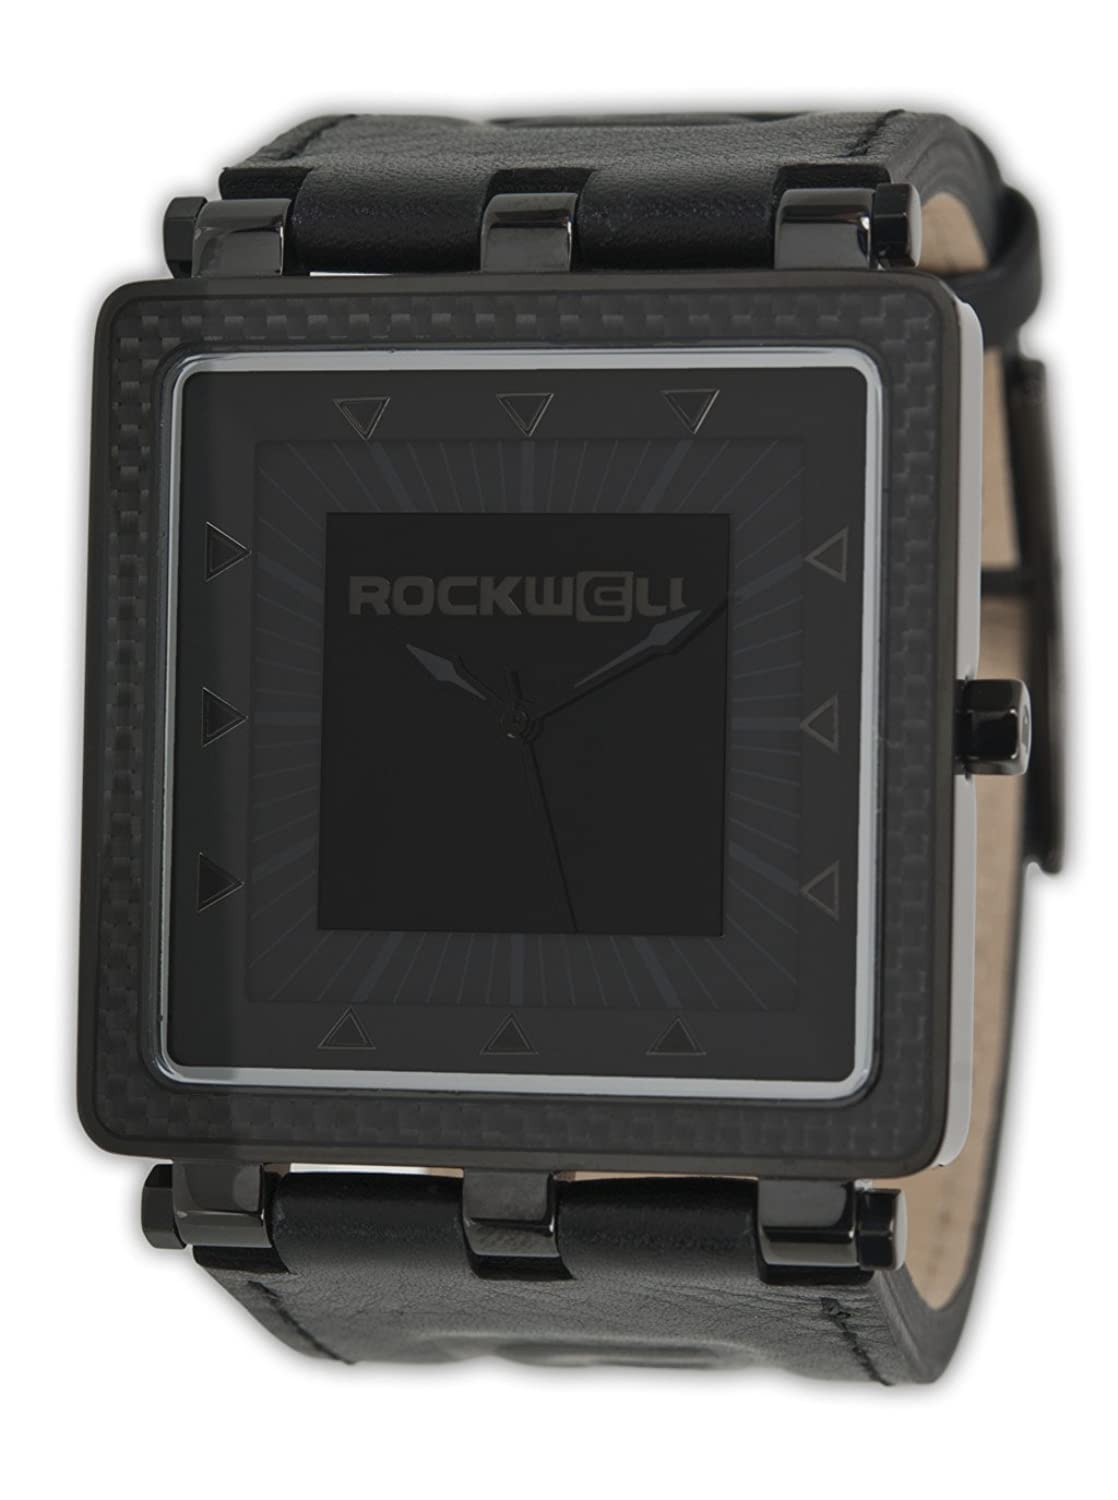 Rockwell CF Carbon Fiber Black Leather- Phantom CF108 Armbanduhr